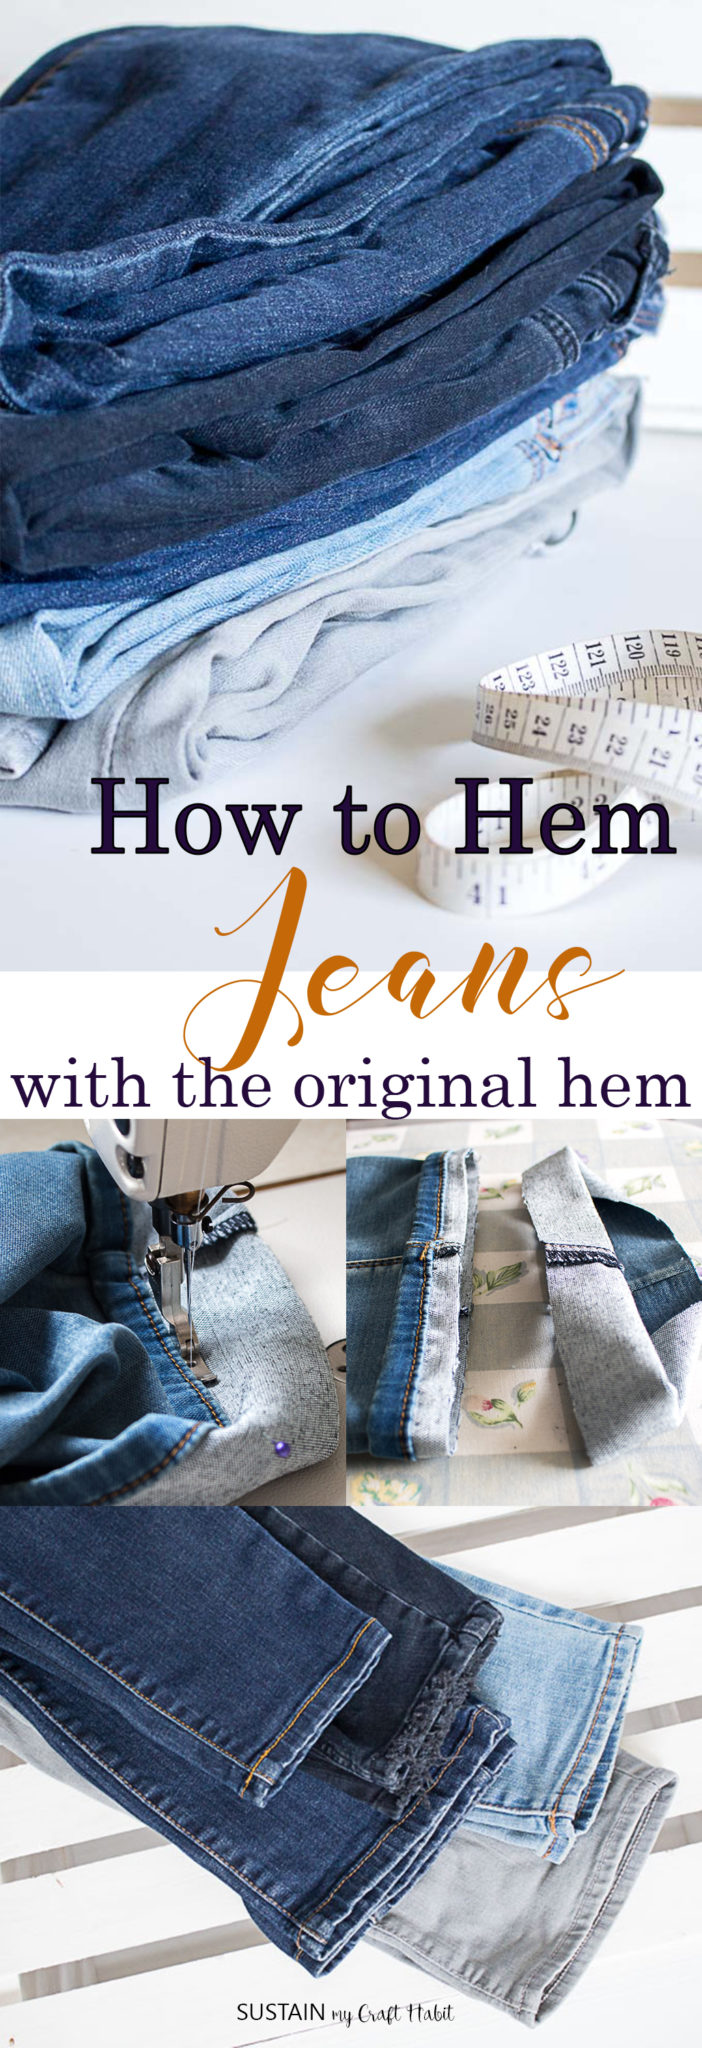 Collage of images showing how to hem jeans